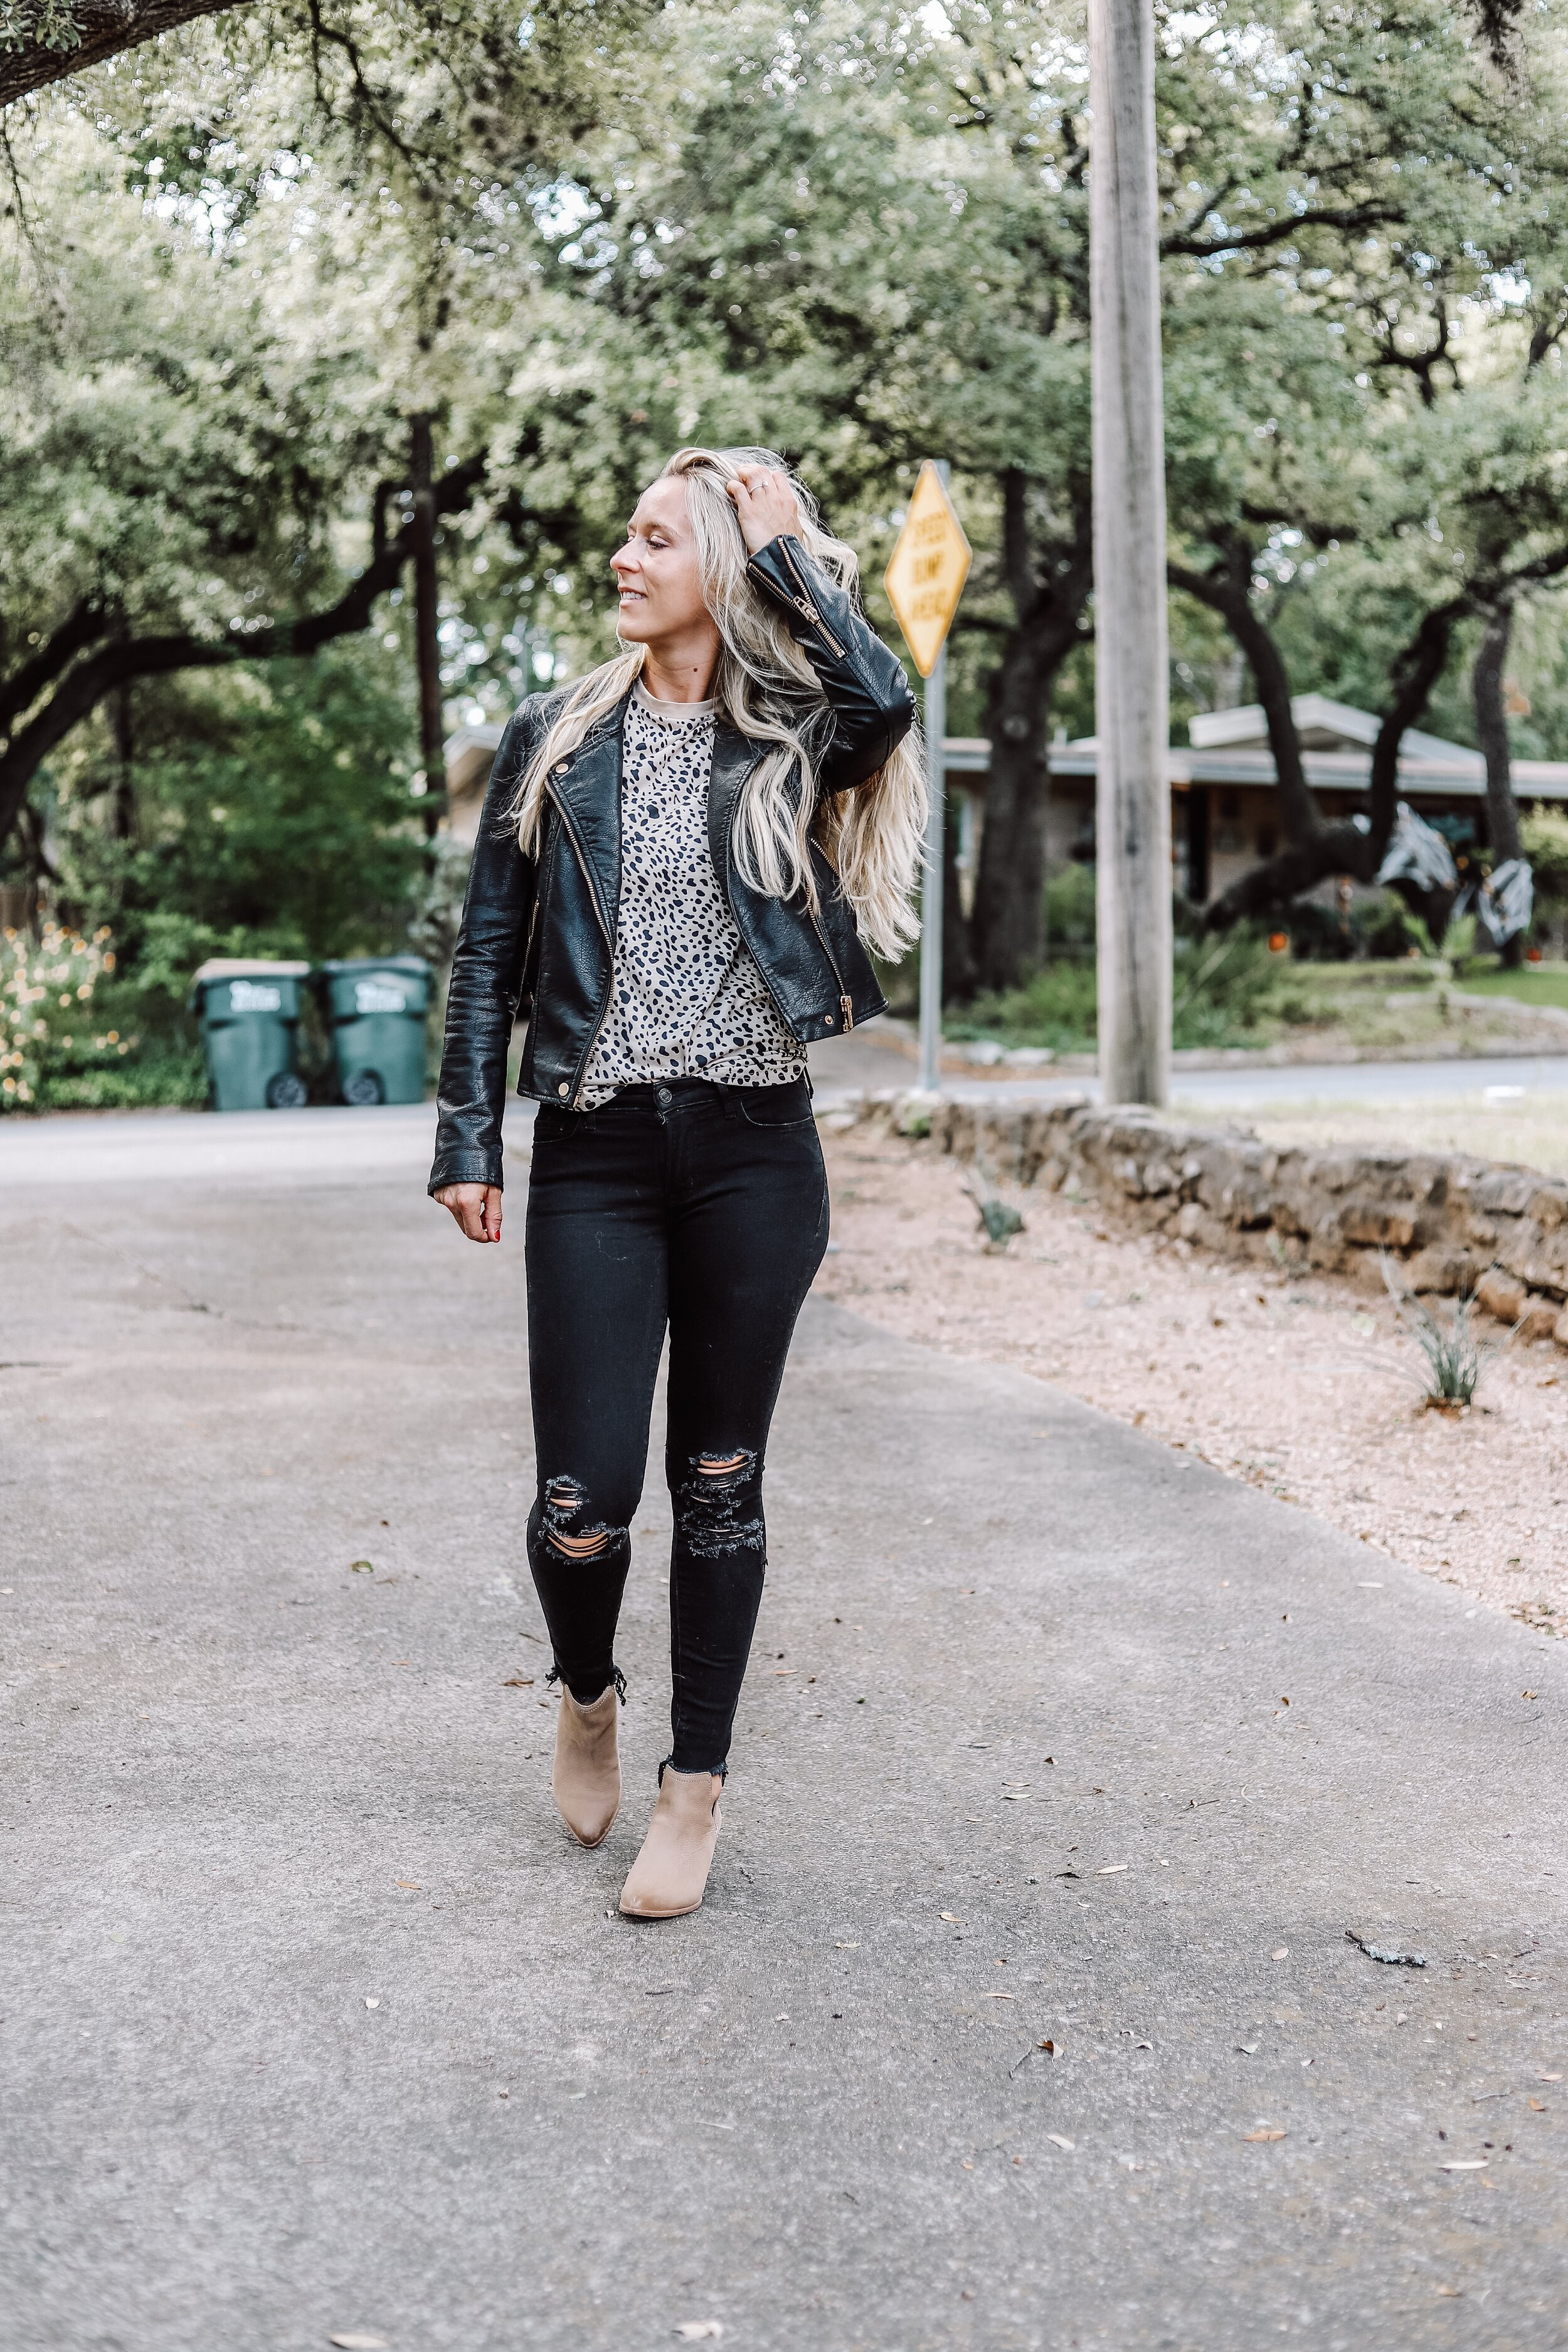 4 Easy and Inexpensive Ways to Incorporate Leopard Into Your Fall Wardrobe